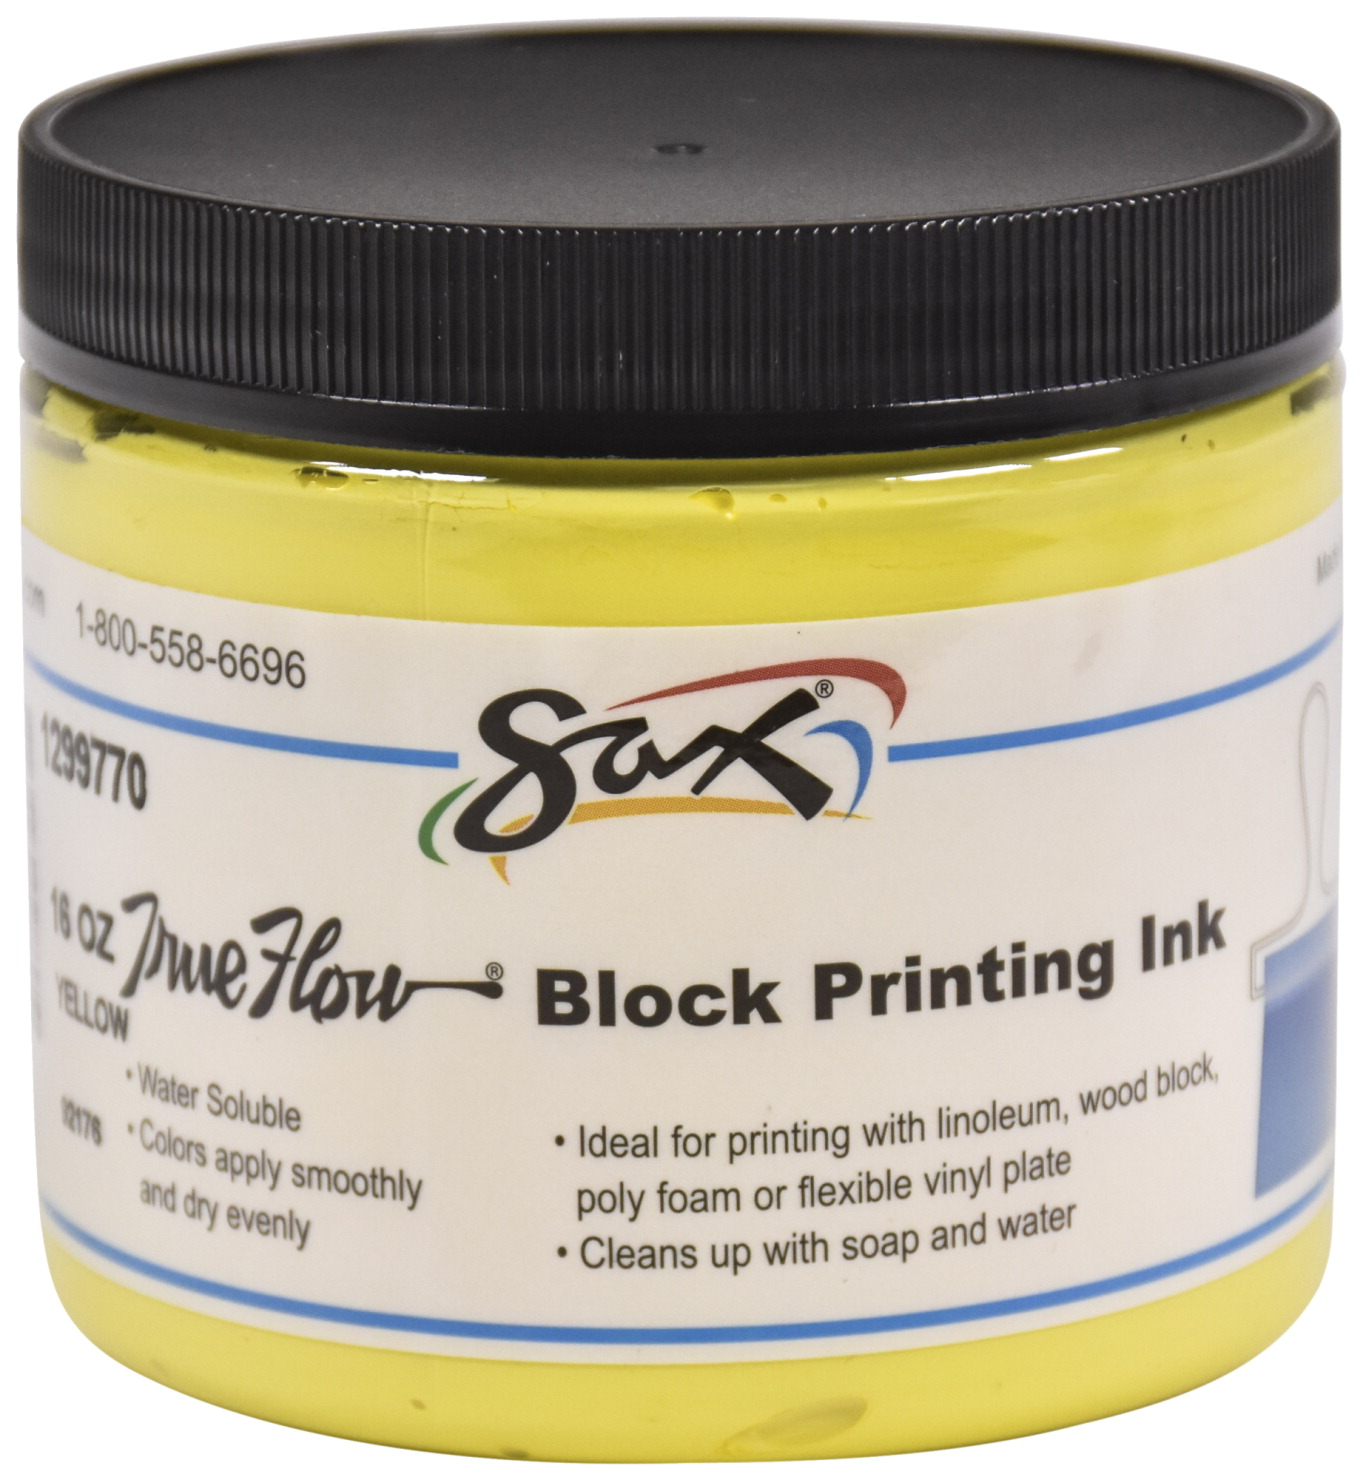 Sax True Flow Water Soluble Block Printing Ink, 1 Pint Jar, Primary Yellow